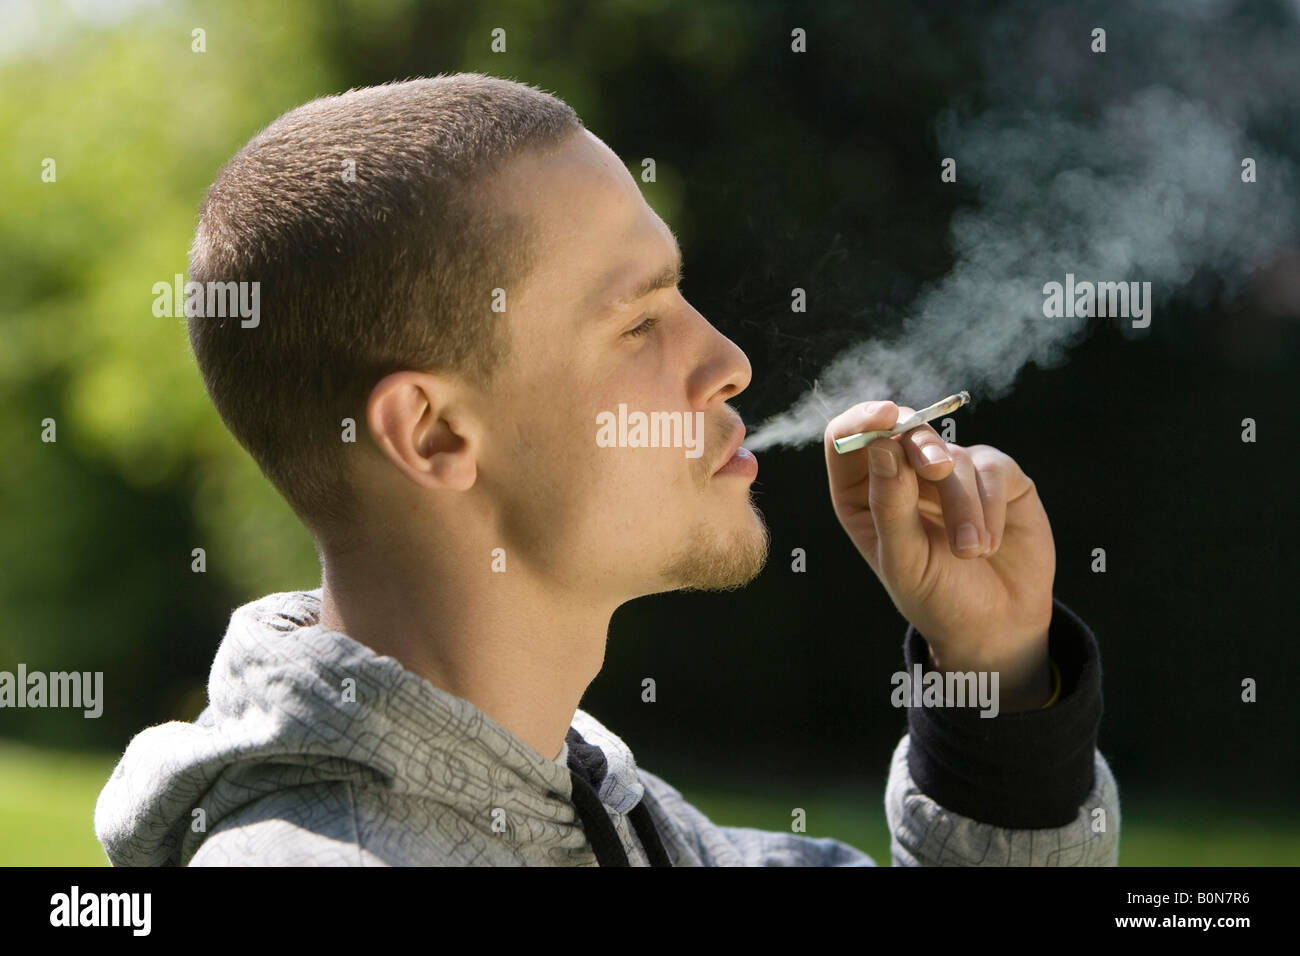 how to make a cigarette look like a joint